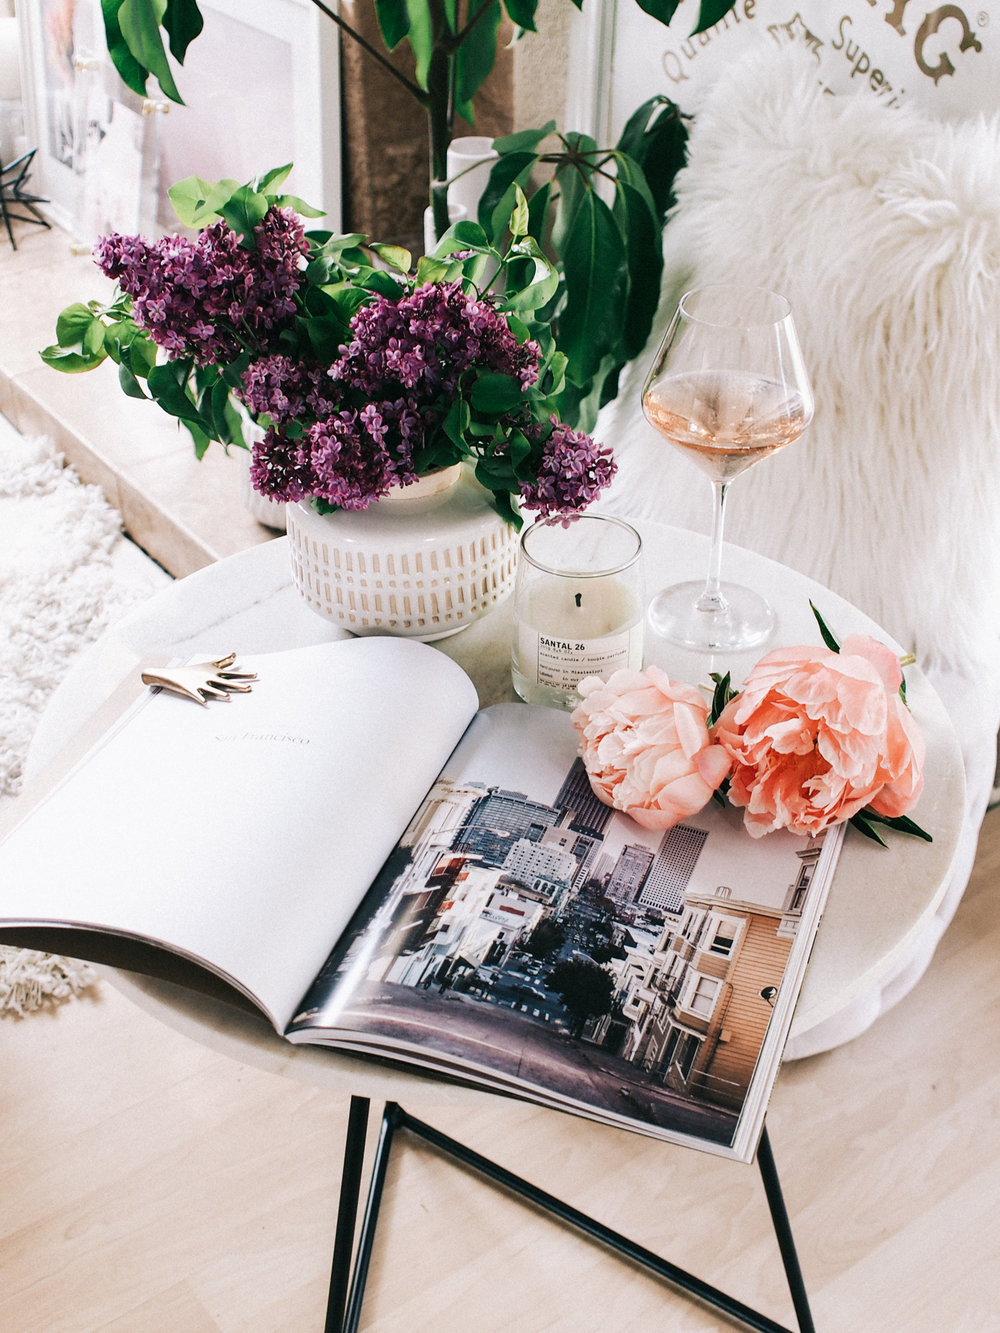 How-to-style-an-entry-table-3.jpg